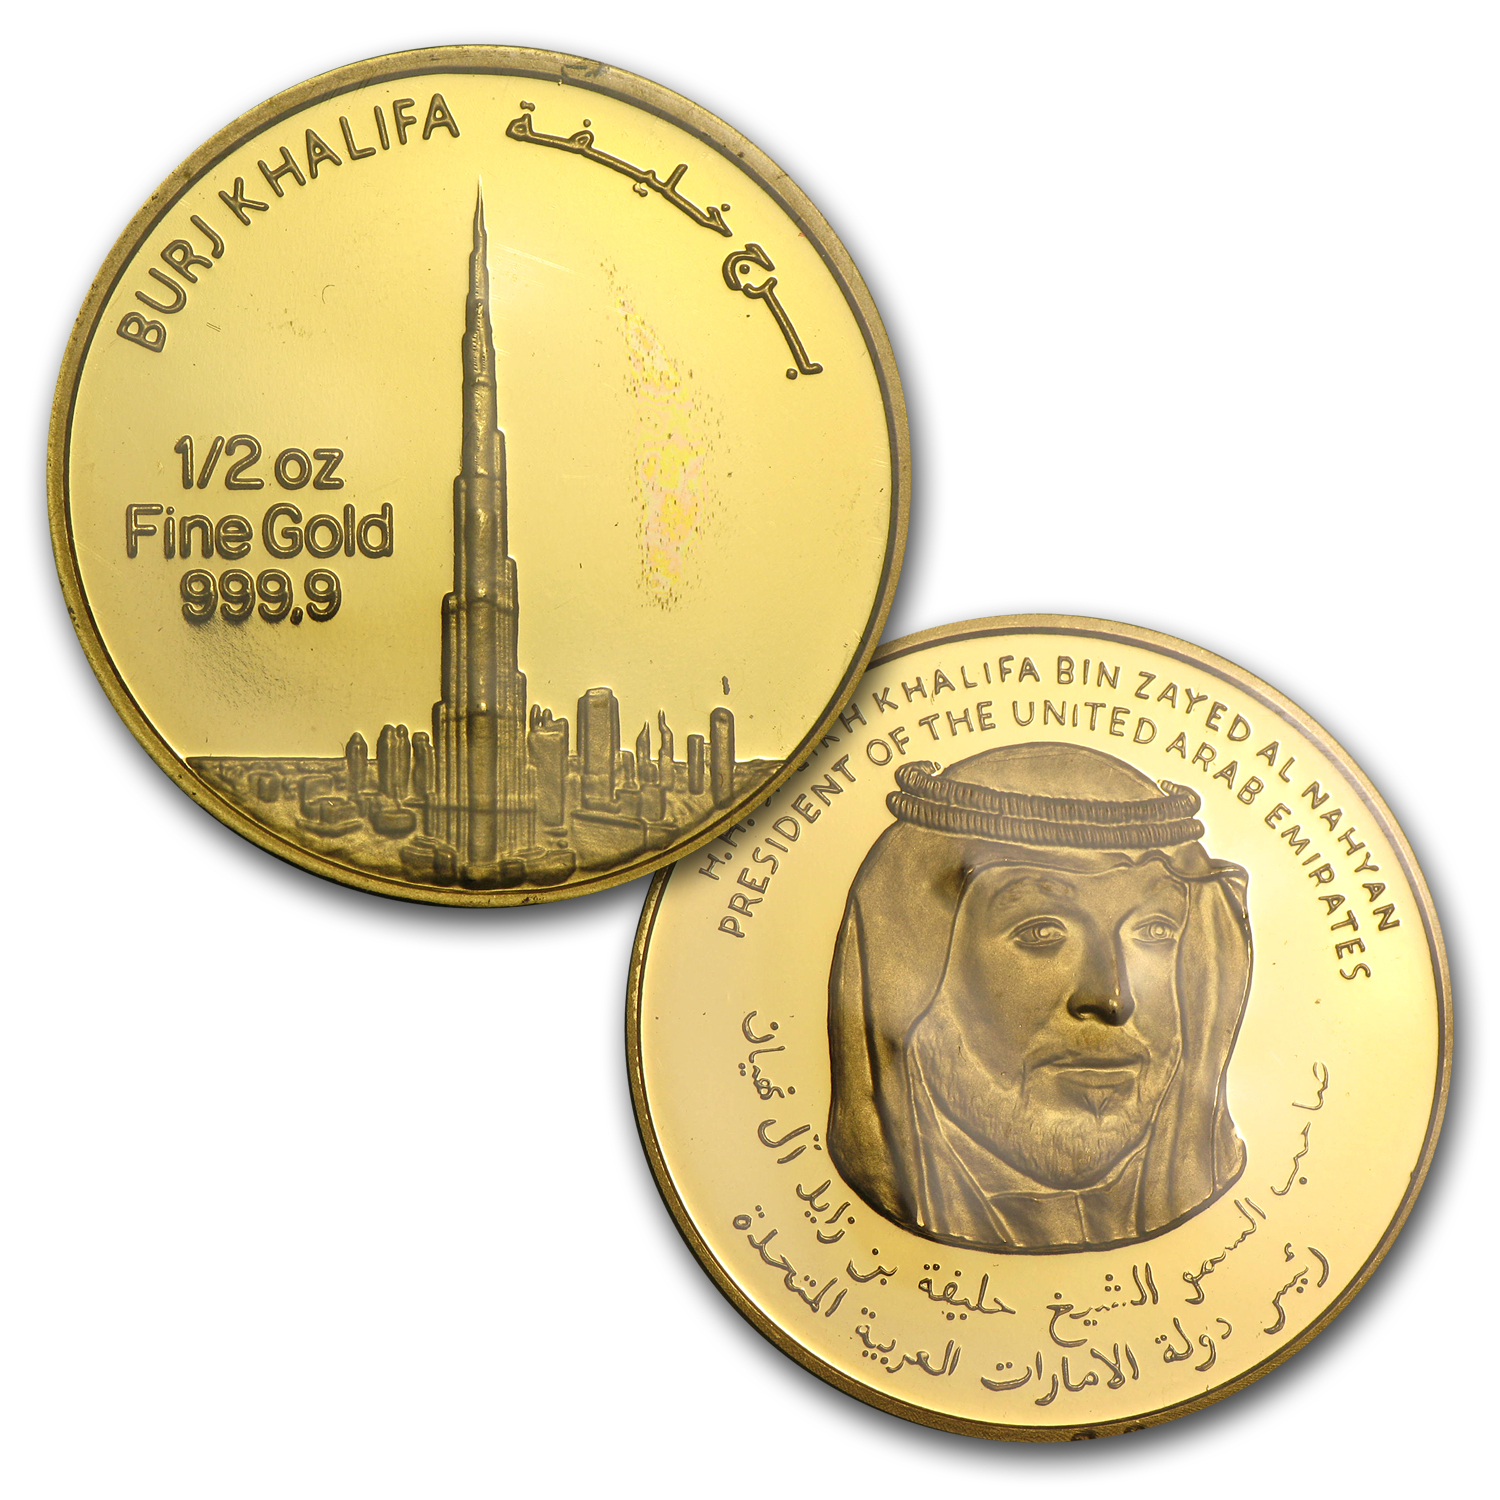 1.85 oz Gold Rounds - UAE 2012 Dubai Gold Burj Khalifa (4 pc)